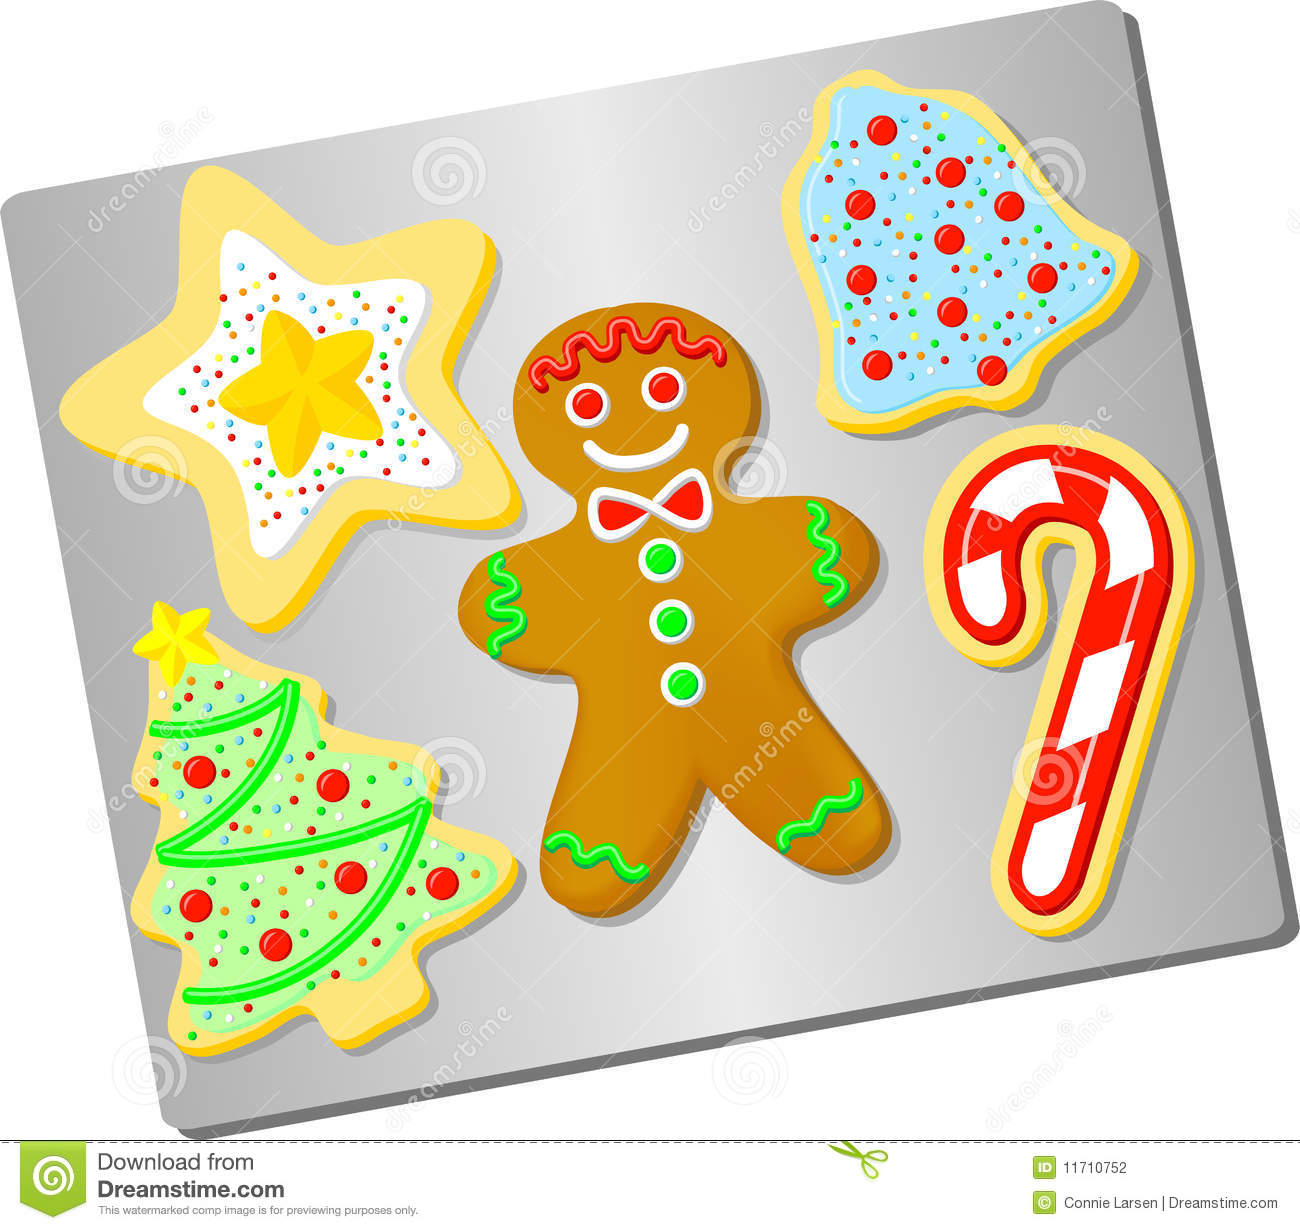 christmas cookies clipart free yeni mescale co rh yeni mescale co christmas cookie clipart free free clipart christmas cookie bake